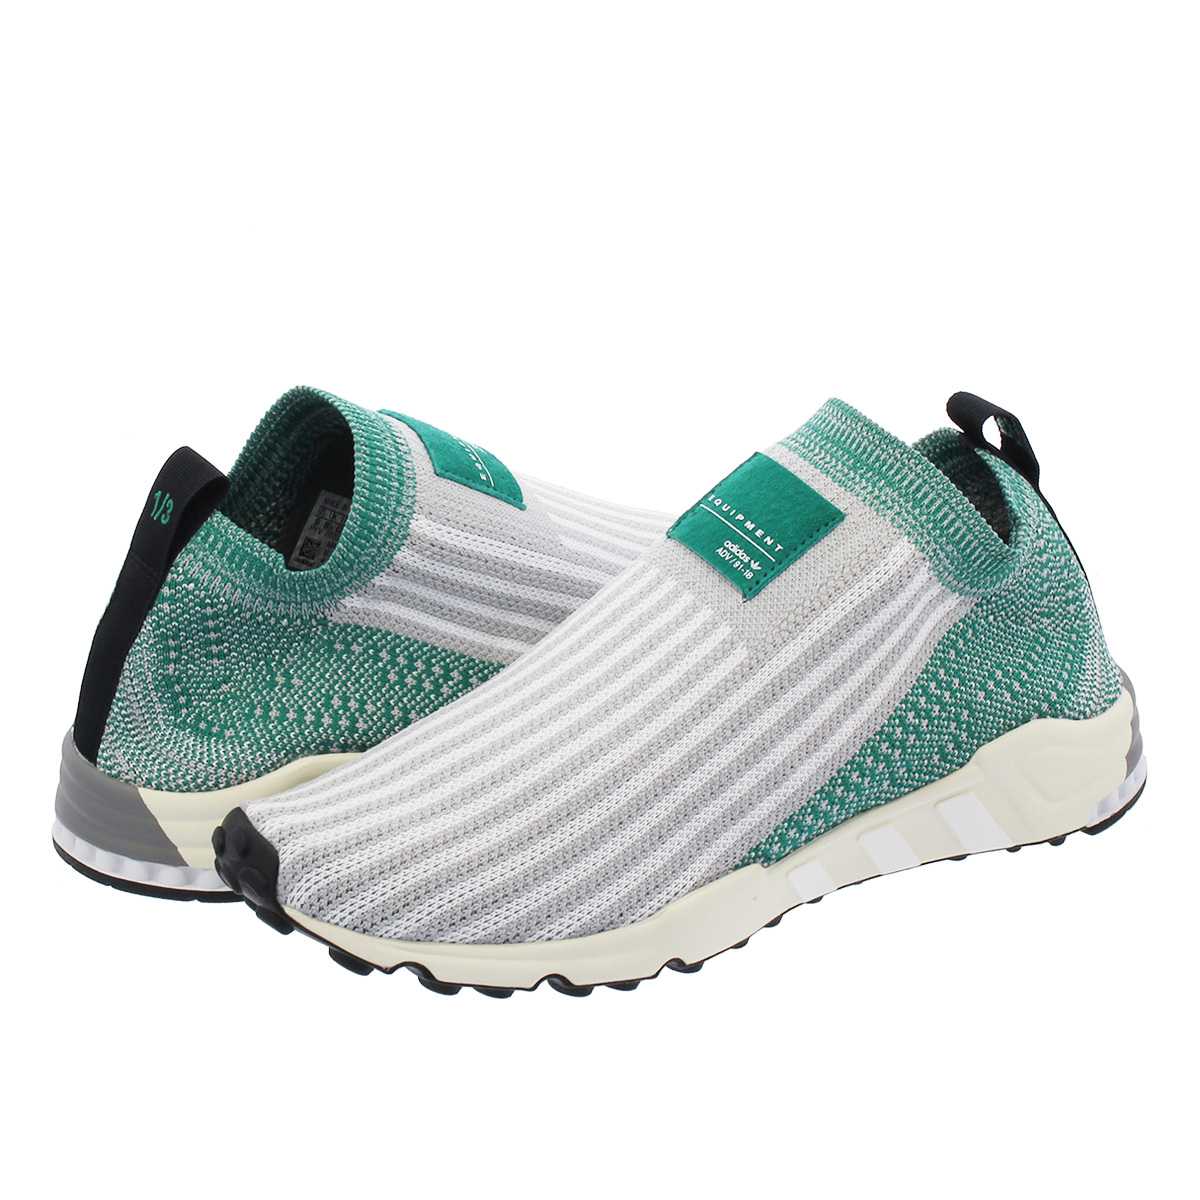 buy online 7cd22 b70df adidas EQT SUPPORT PK 1/3 Adidas EQT support prime knit 1/3 GREY  TWO/RUNNING WHITE/SUB GREEN aq1032